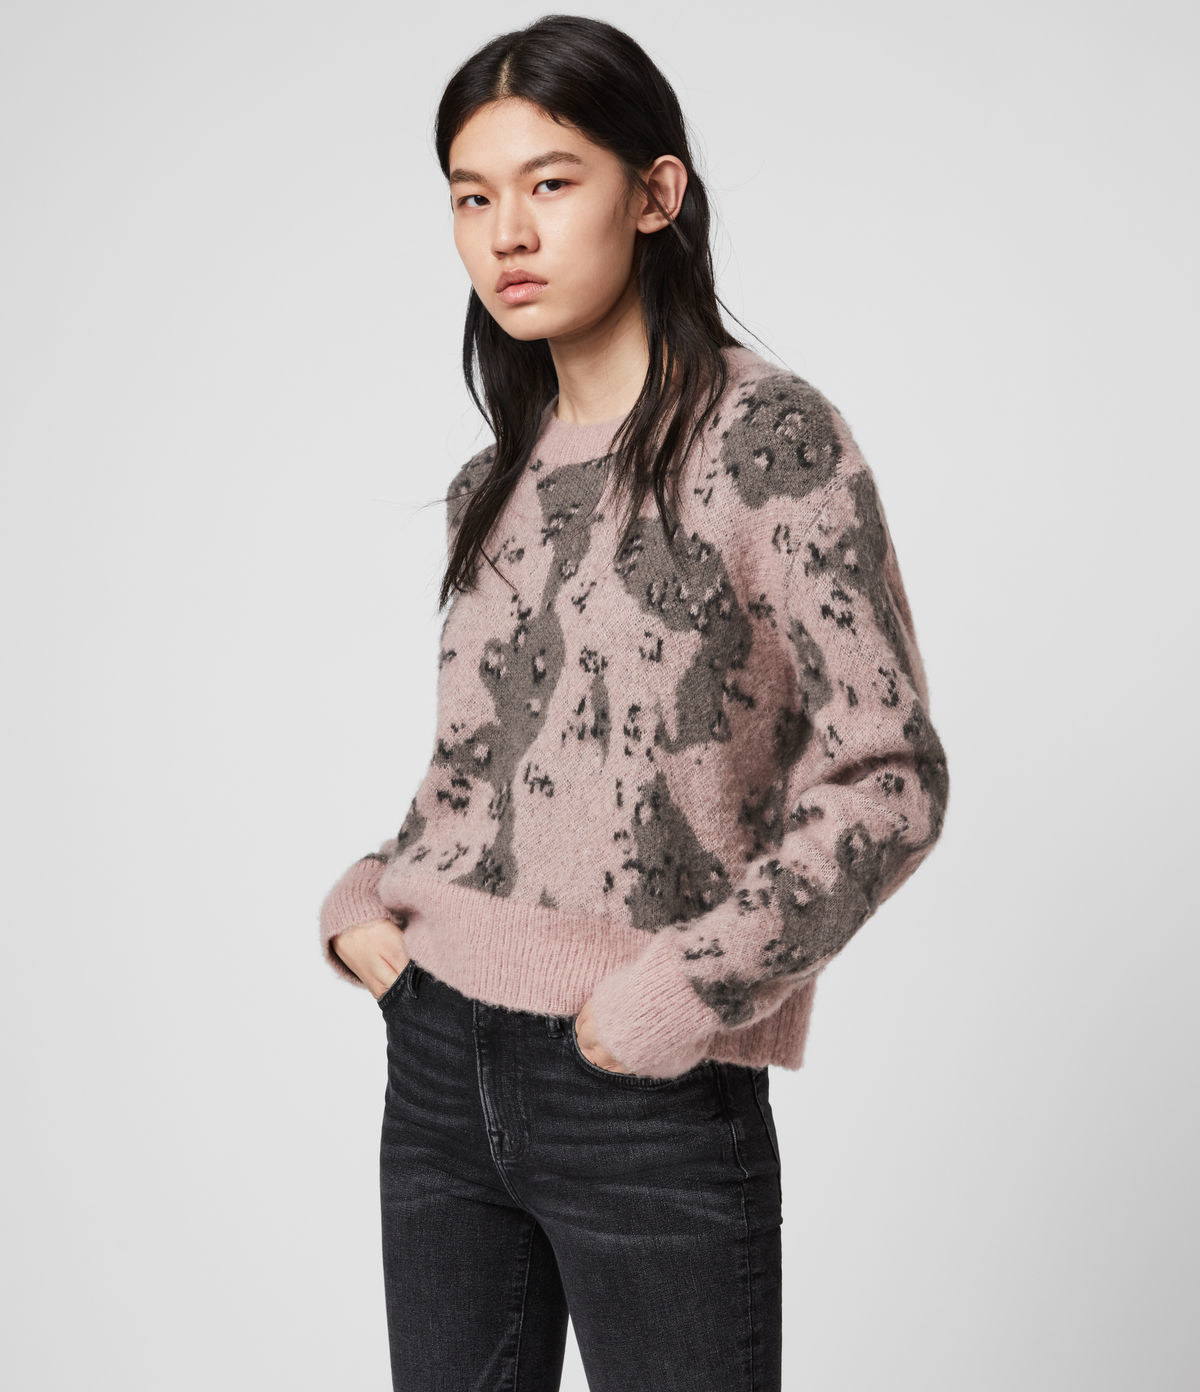 model wearing light pink crewneck sweater with gray and black abstract camo print